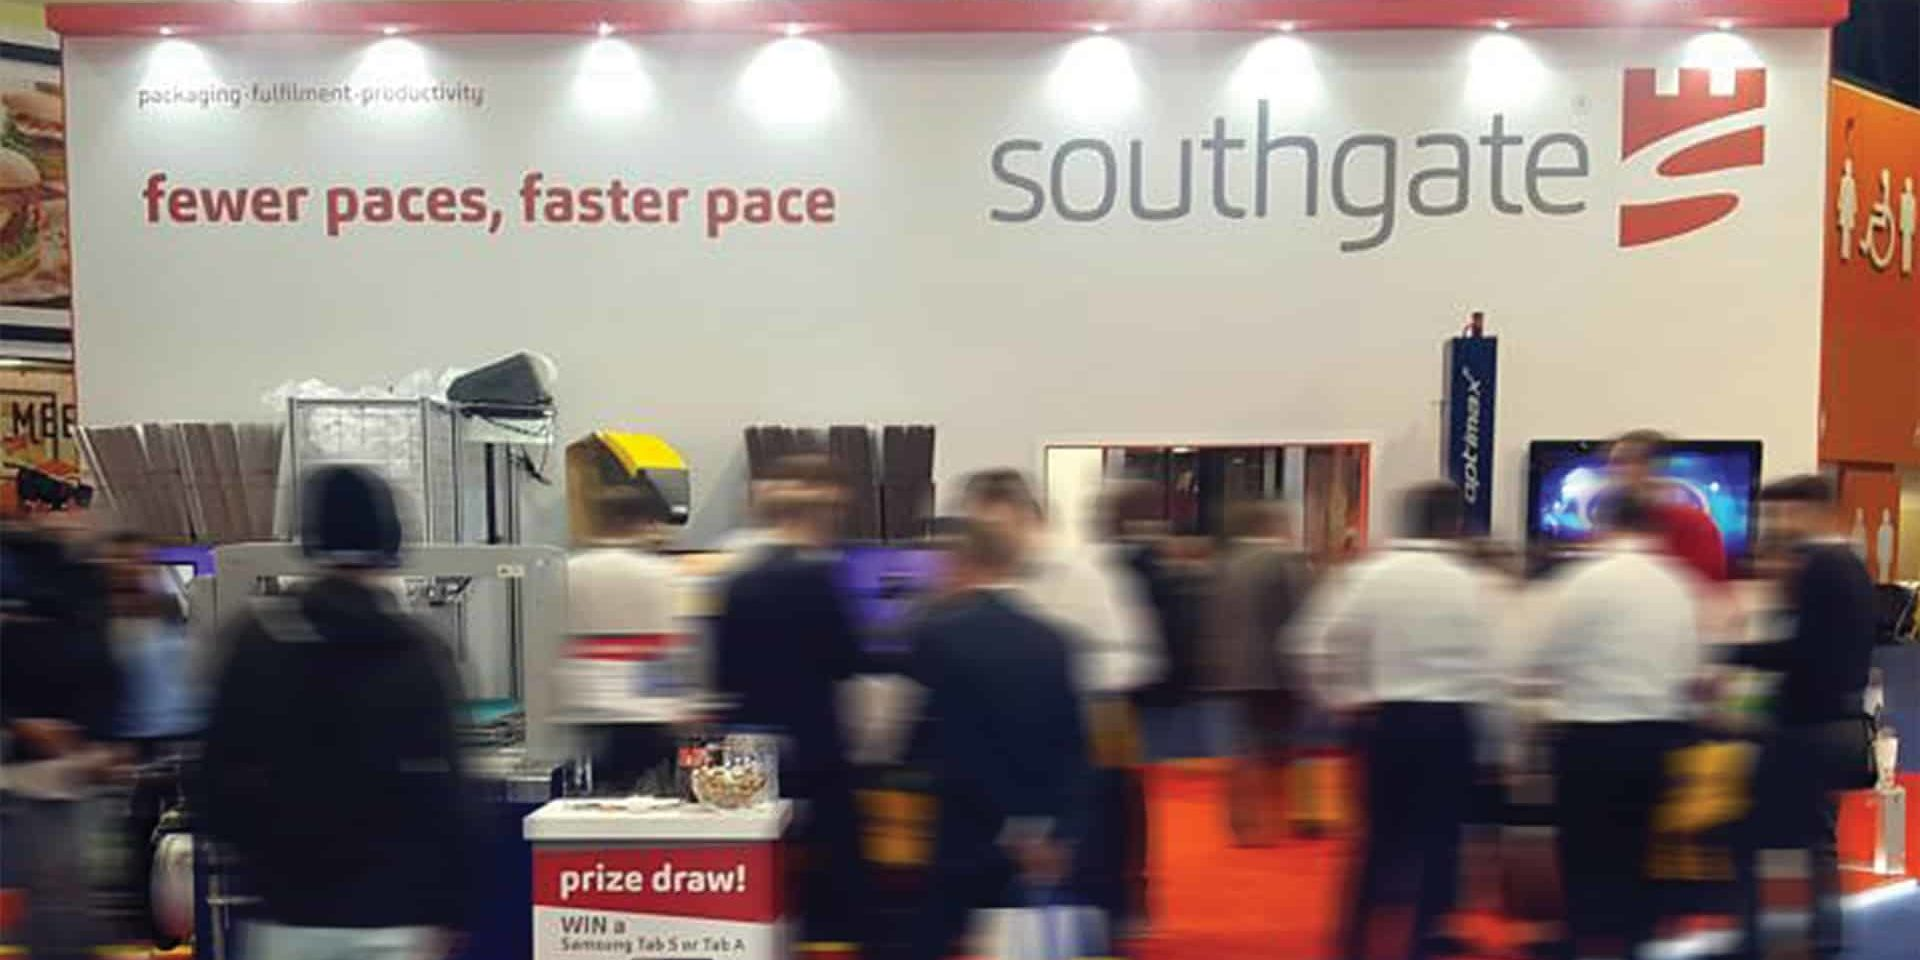 Photo of Southgate's stand at the 2018 multimodal event